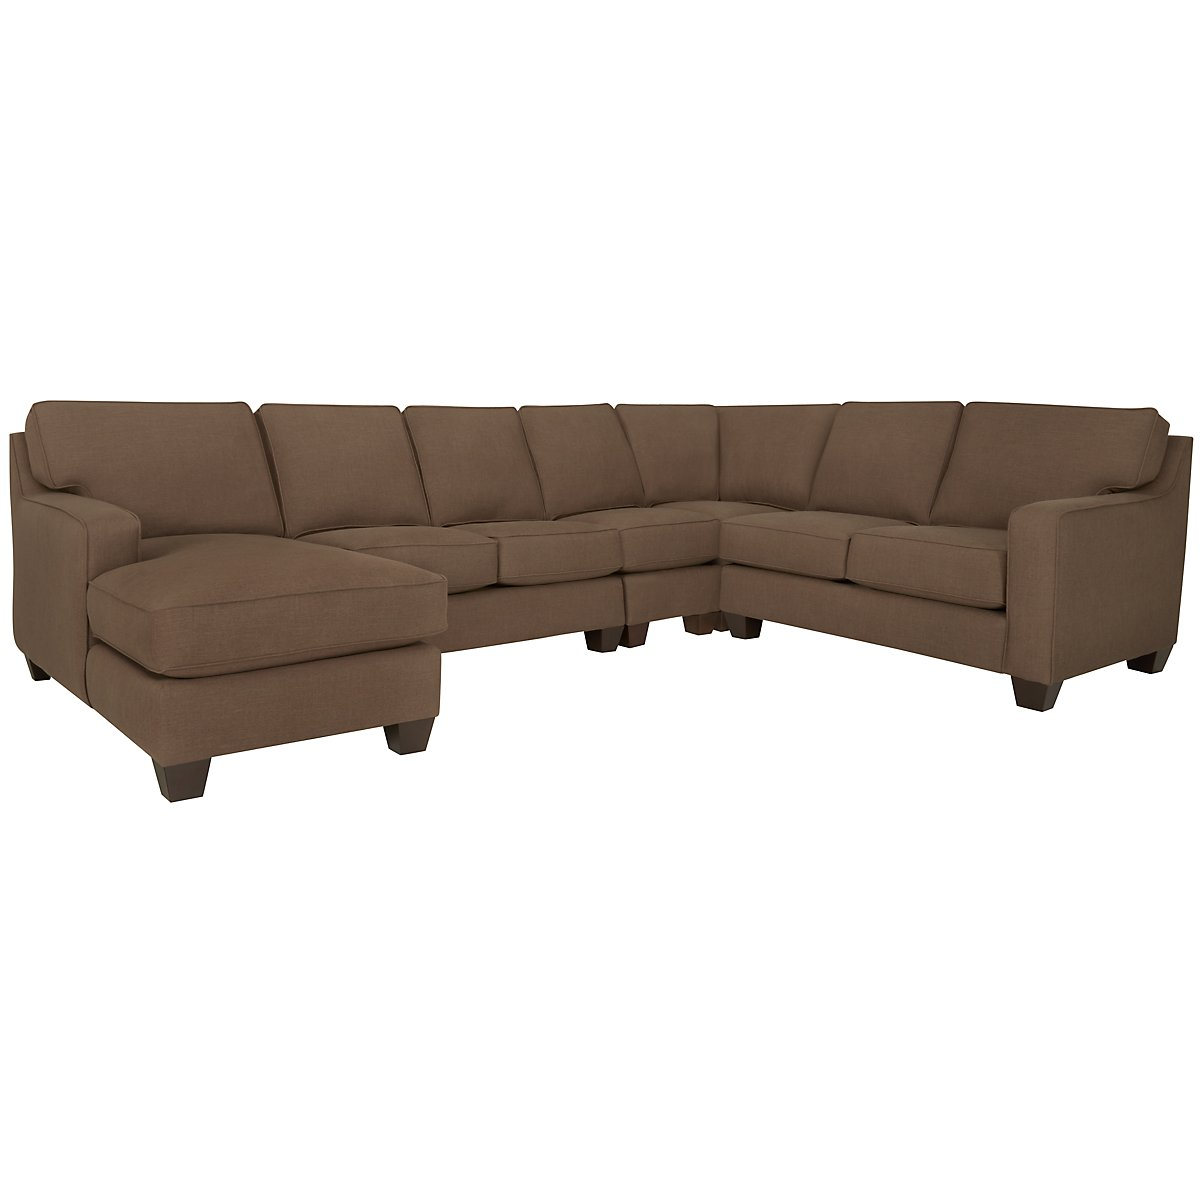 York Dark Brown Fabric Large Left Chaise Sectional